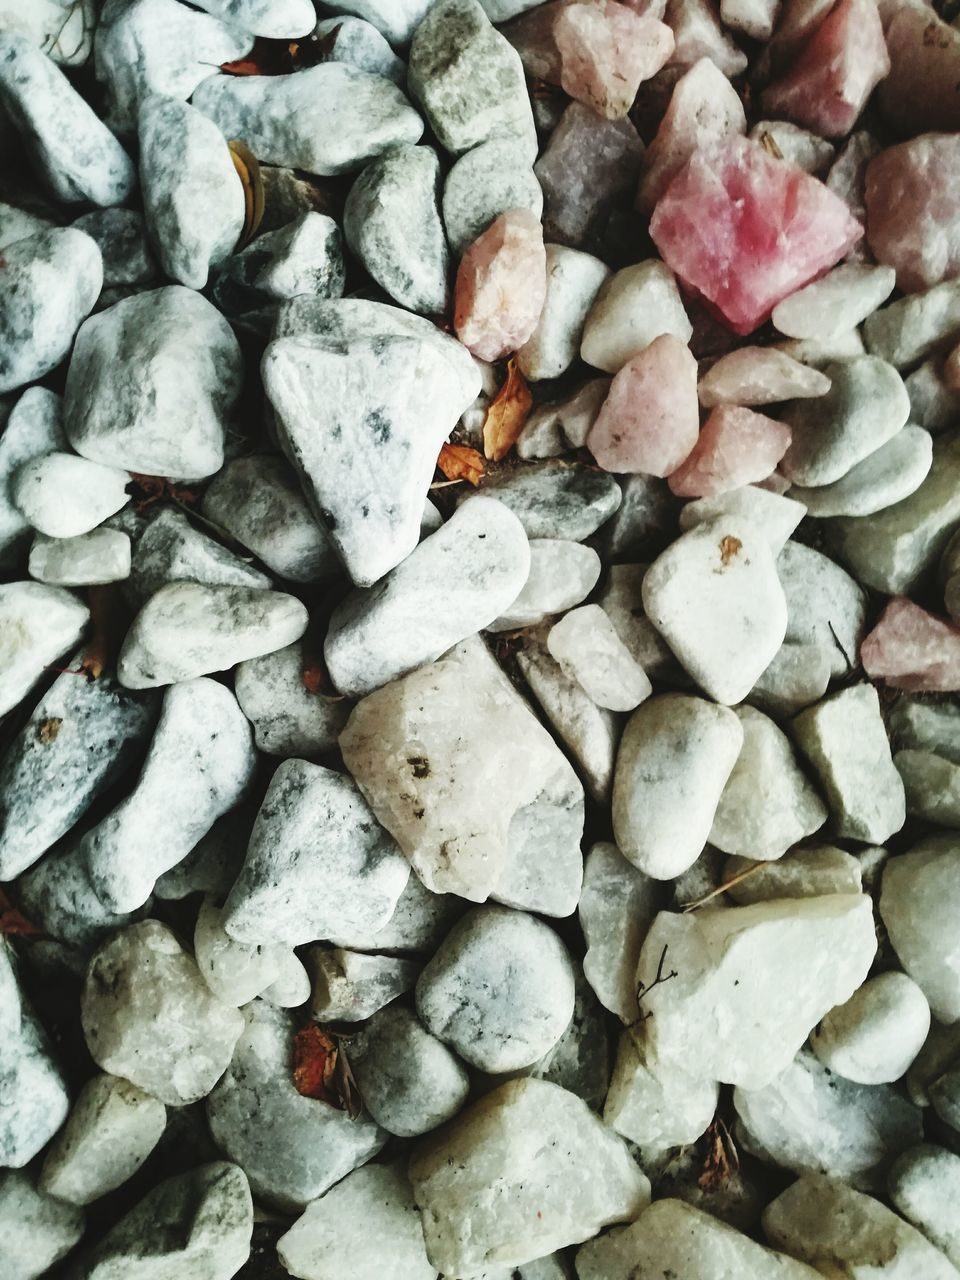 full frame, backgrounds, no people, large group of objects, pebble, nature, close-up, day, outdoors, freshness